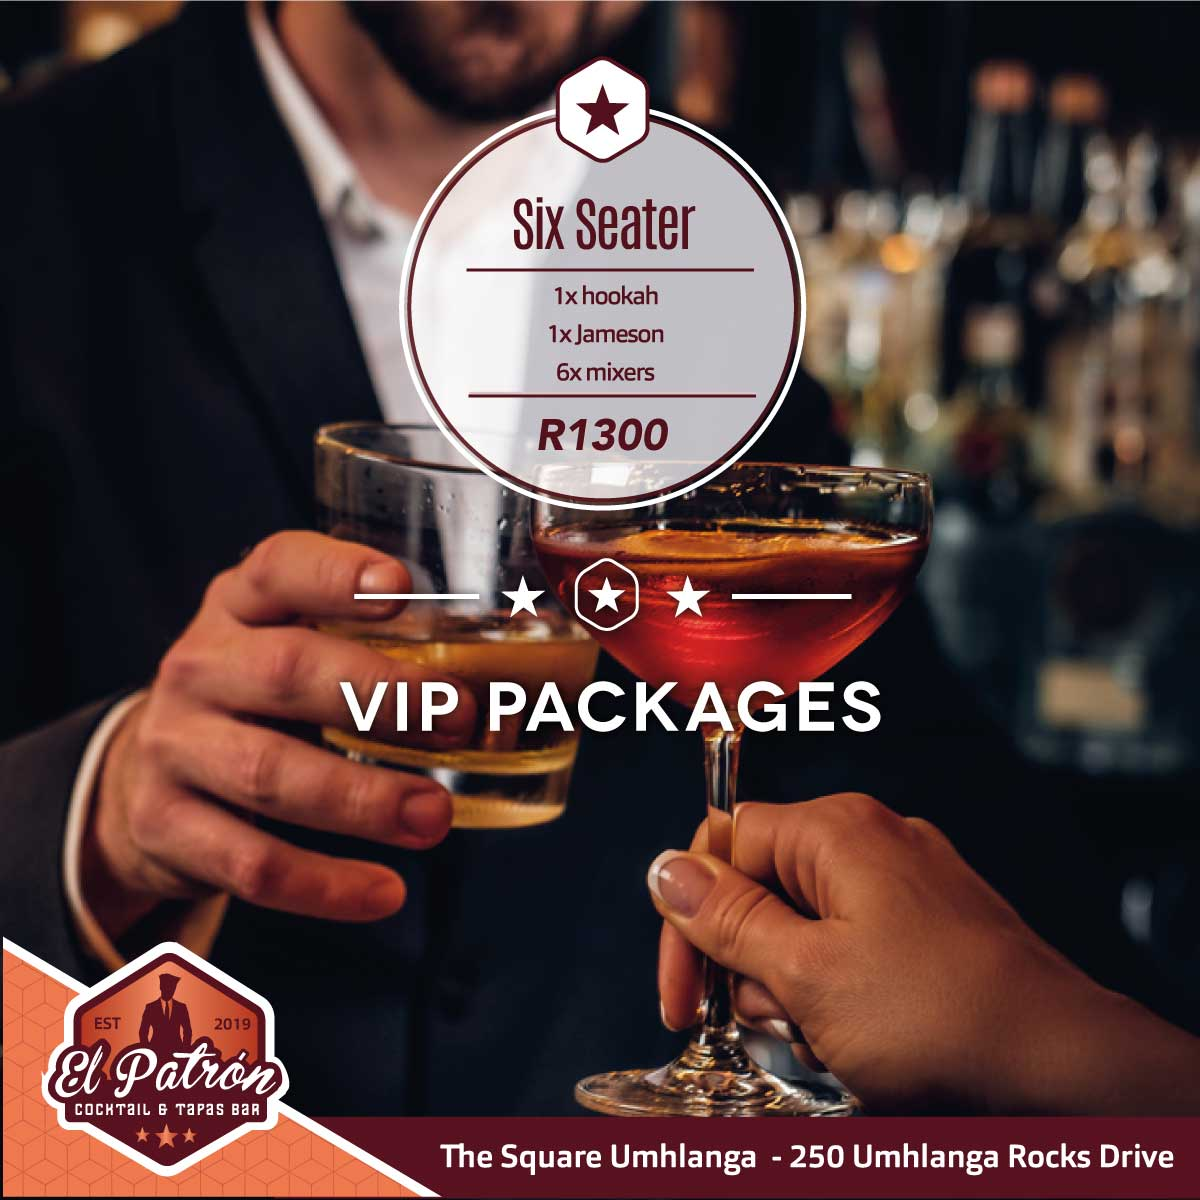 VIP PACKAGE 6 SEATER JAMESON SPECIAL